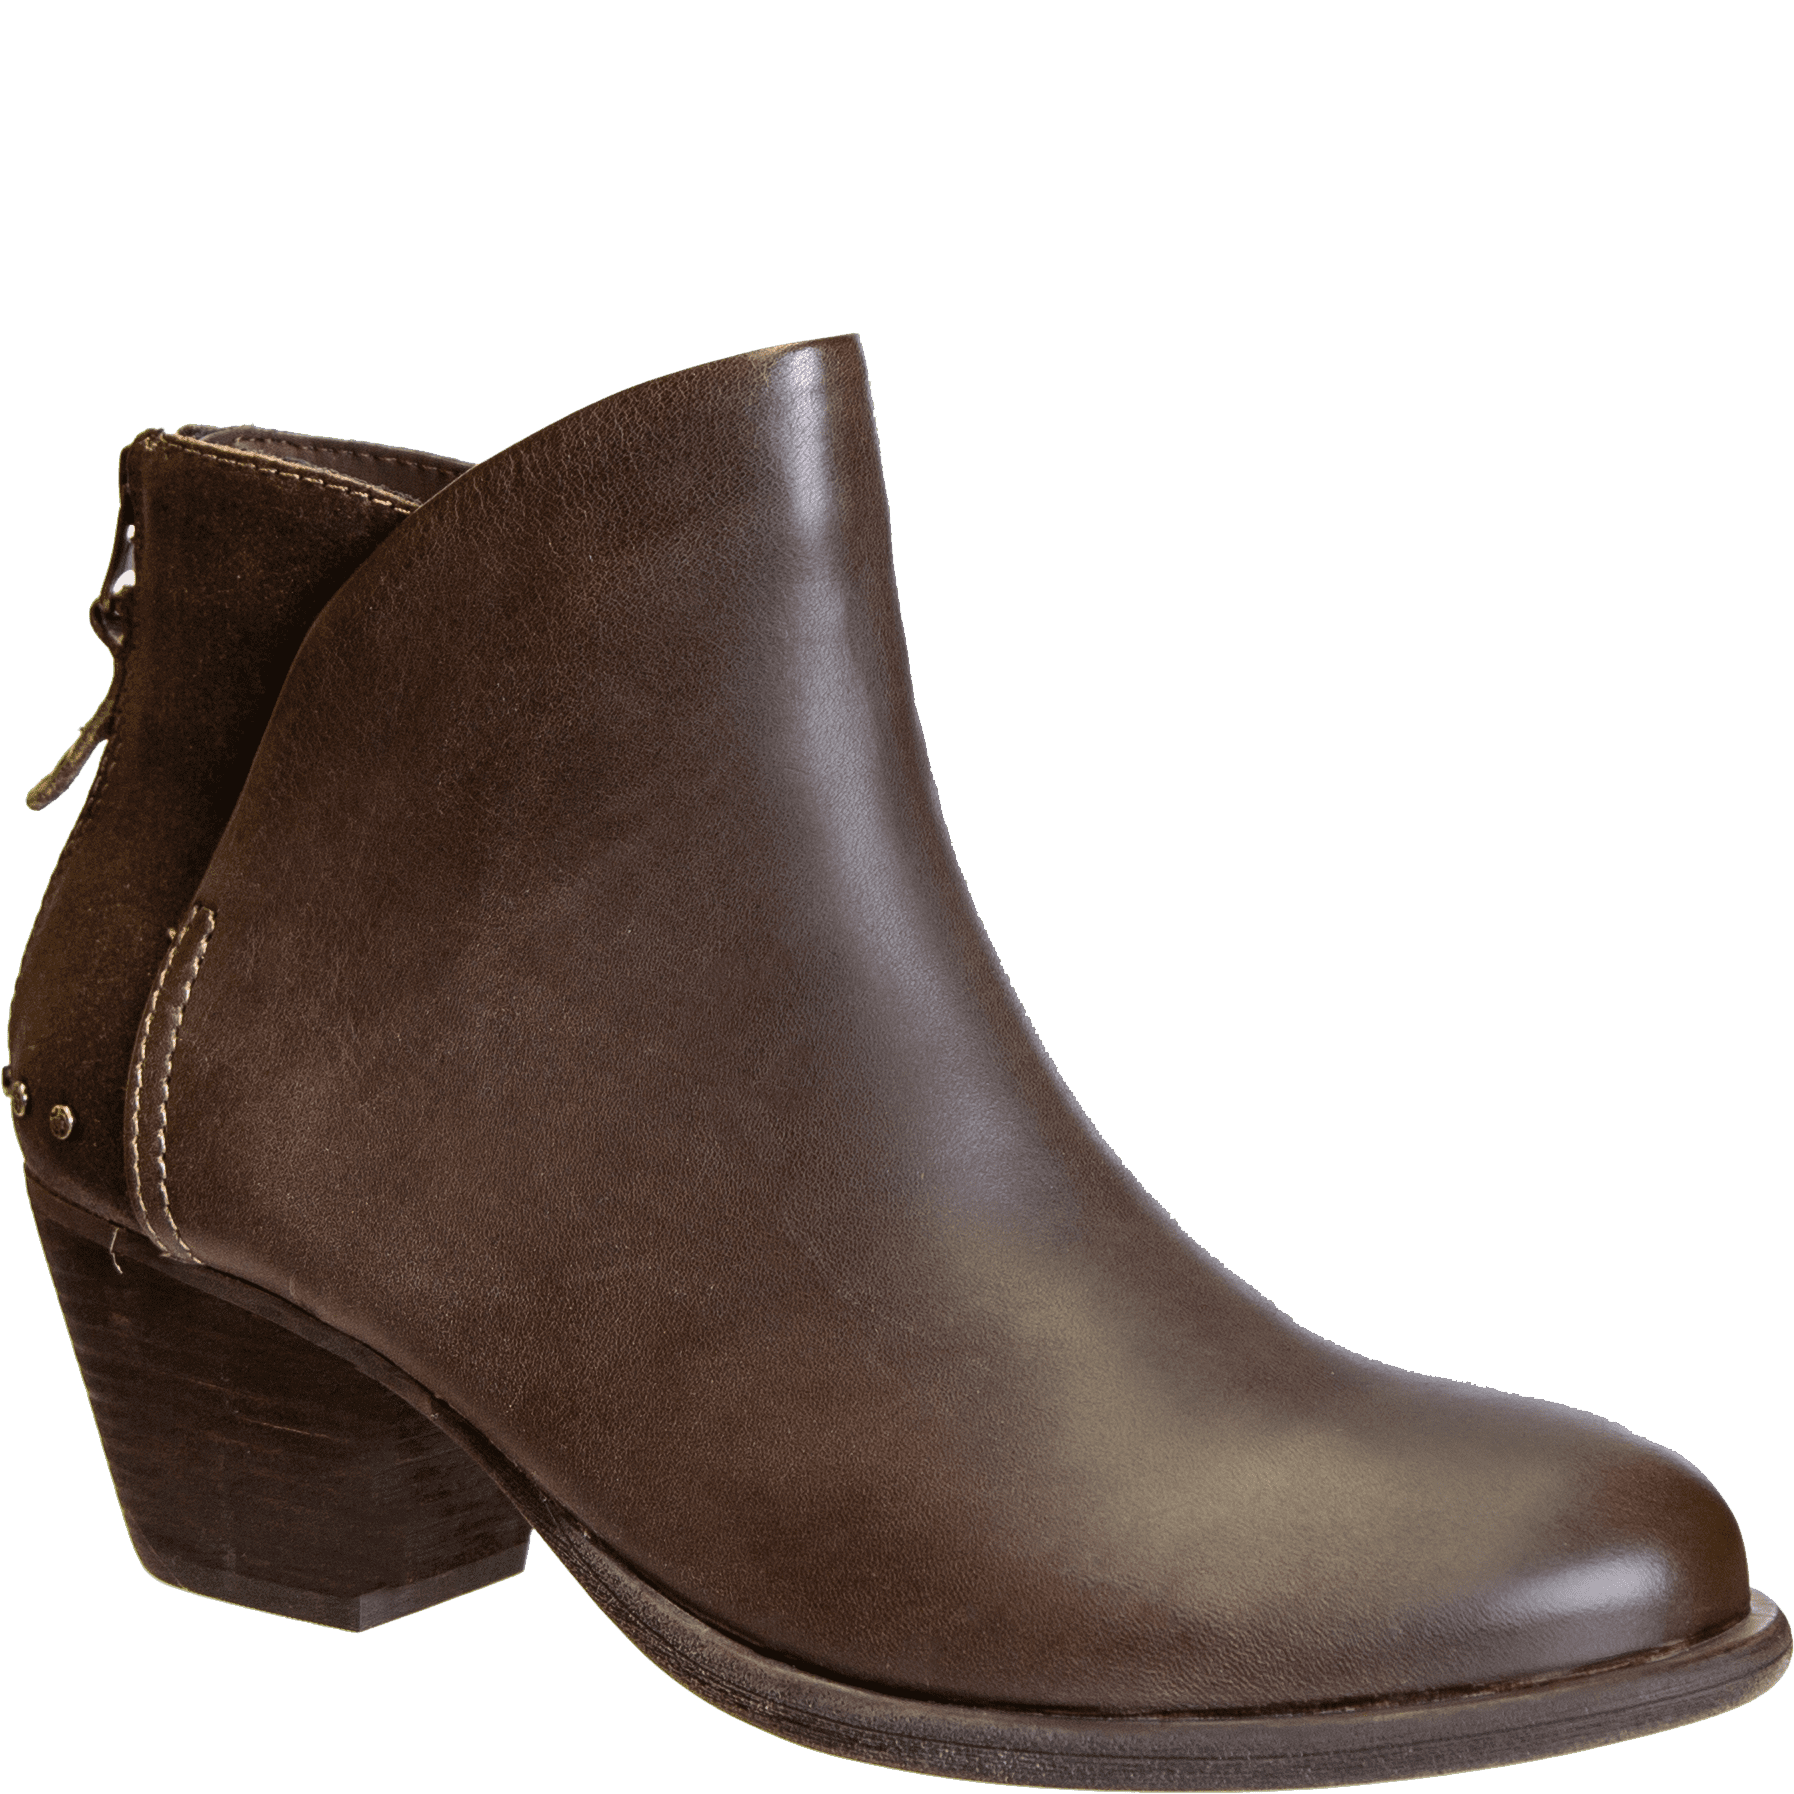 COMPASS in JAVE Ankle Boots